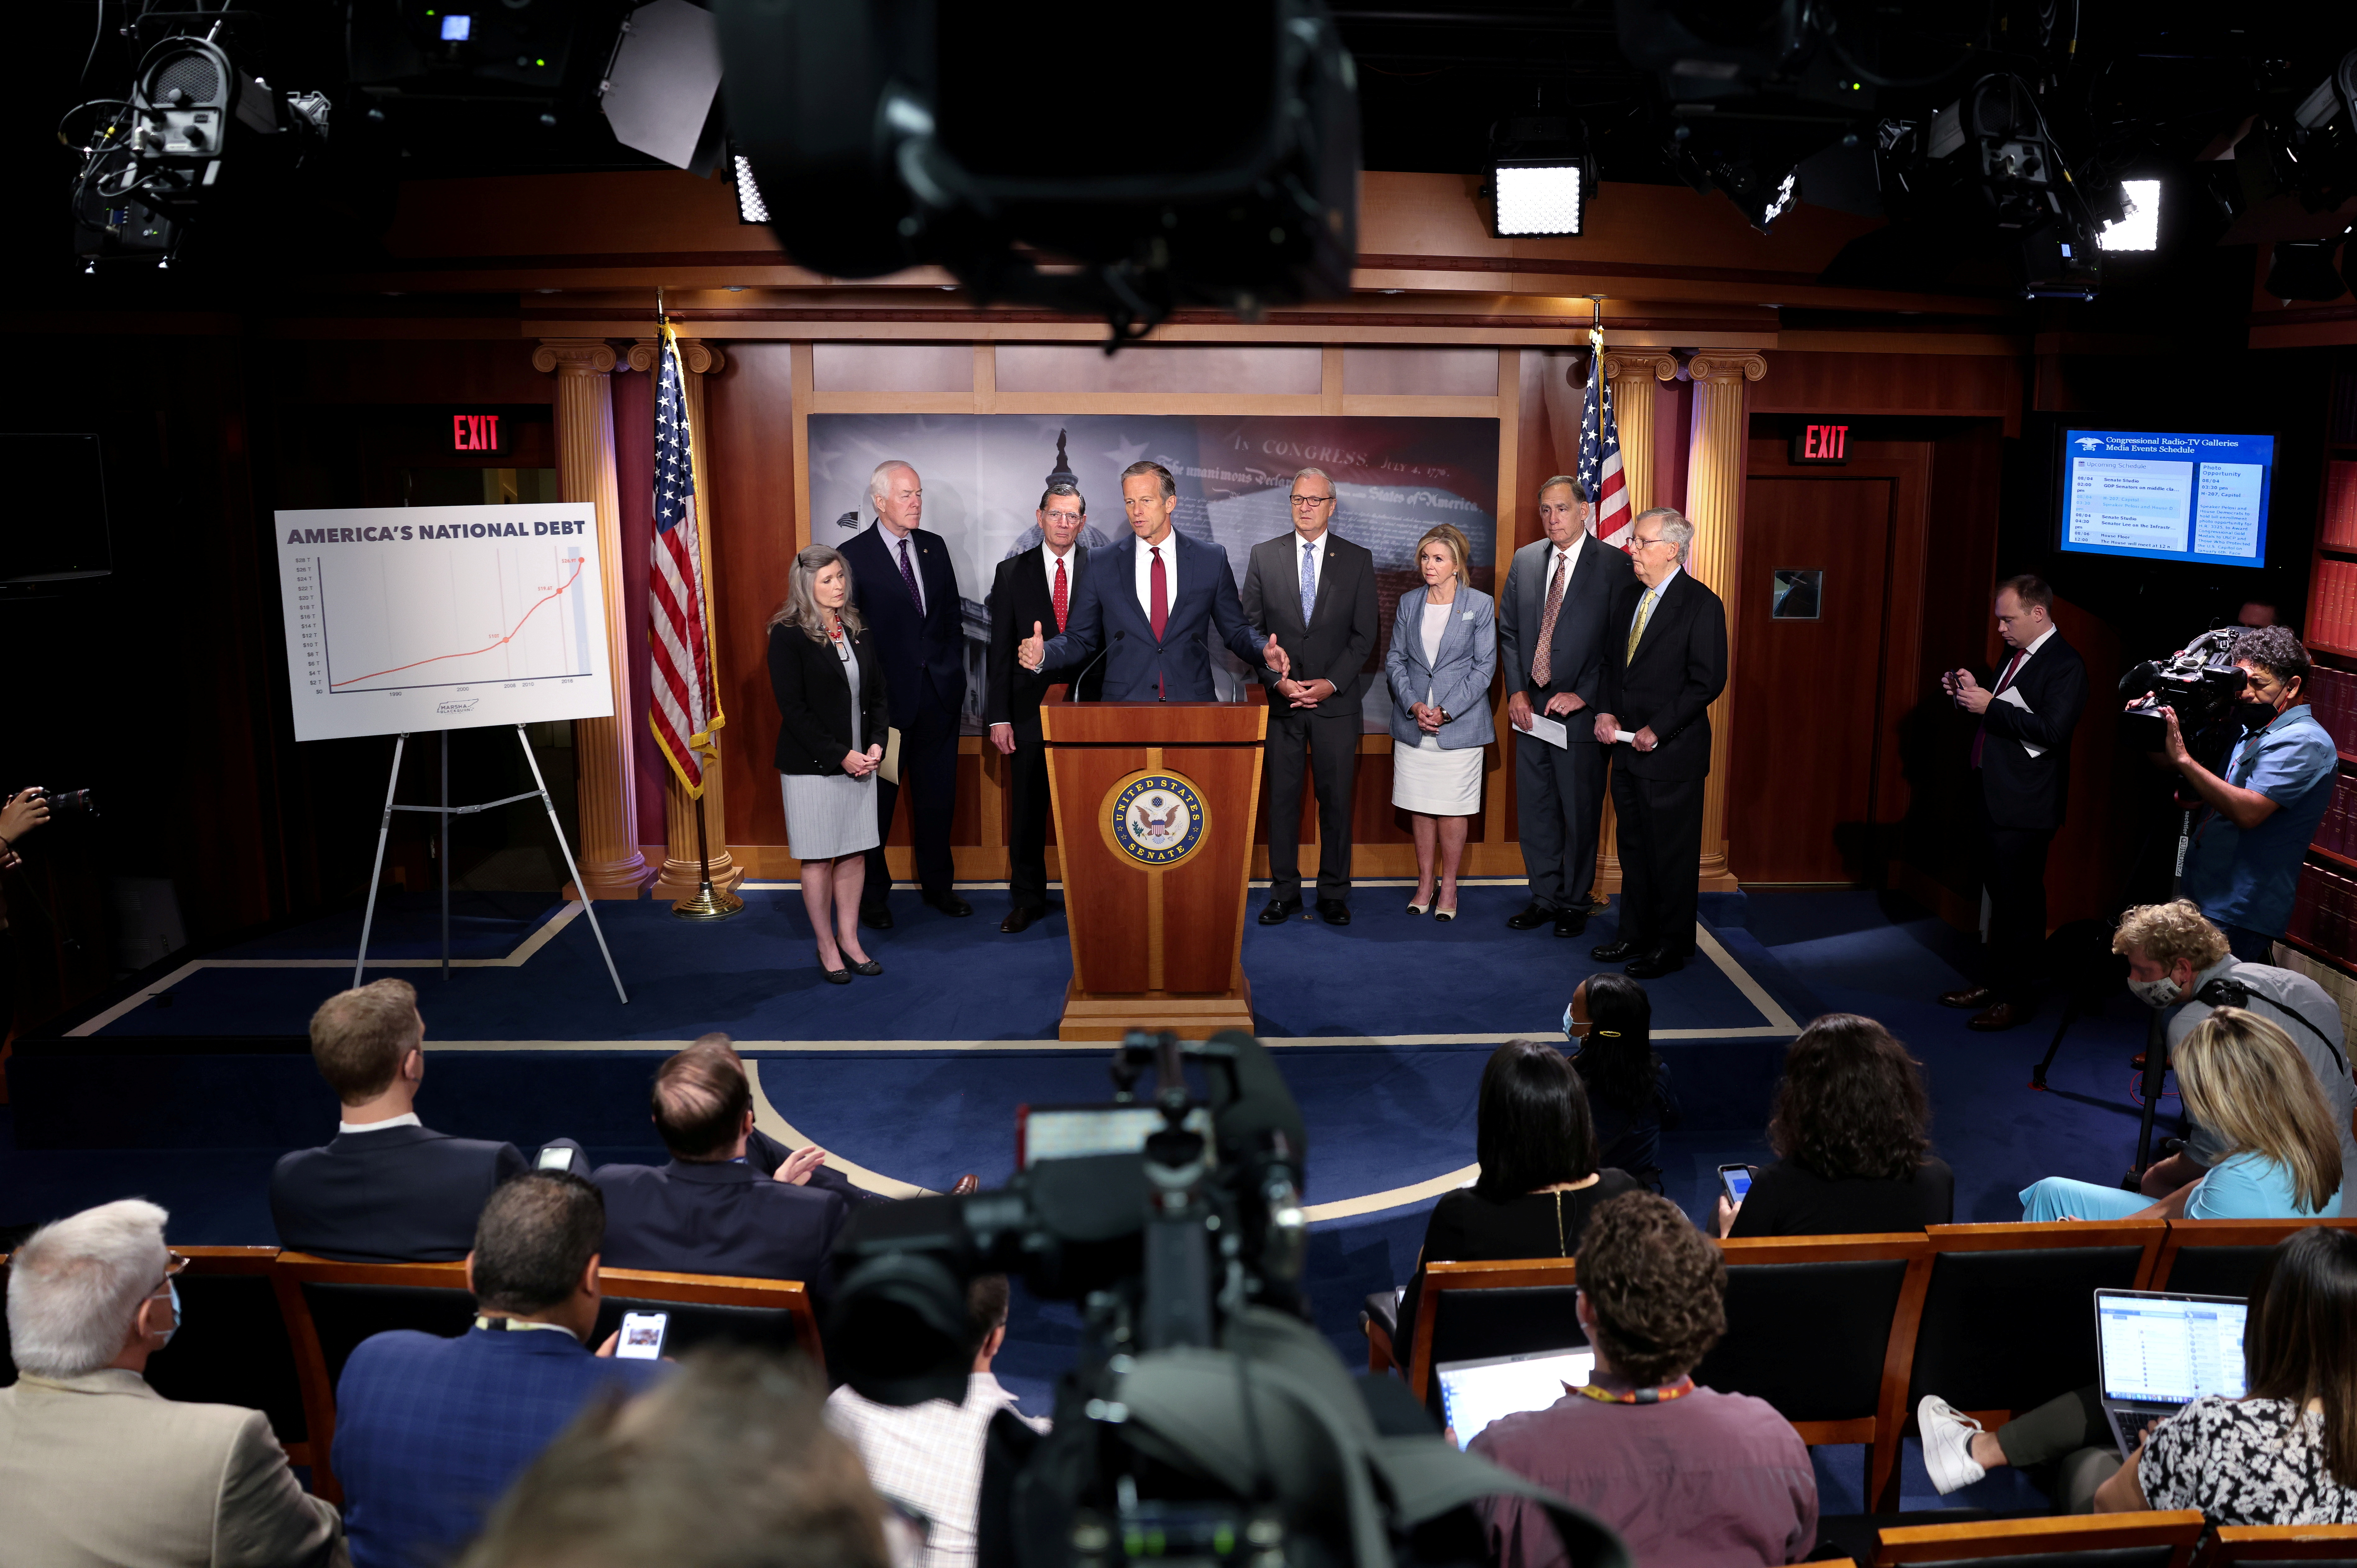 U.S. Senate Minority Whip John Thune (R-SD) speaks during a Republican news conference about potential Democratic tax hikes and the national debt at the U.S. Capitol in Washington, DC, U.S., August 4, 2021. REUTERS/Evelyn Hockstein/File Photo